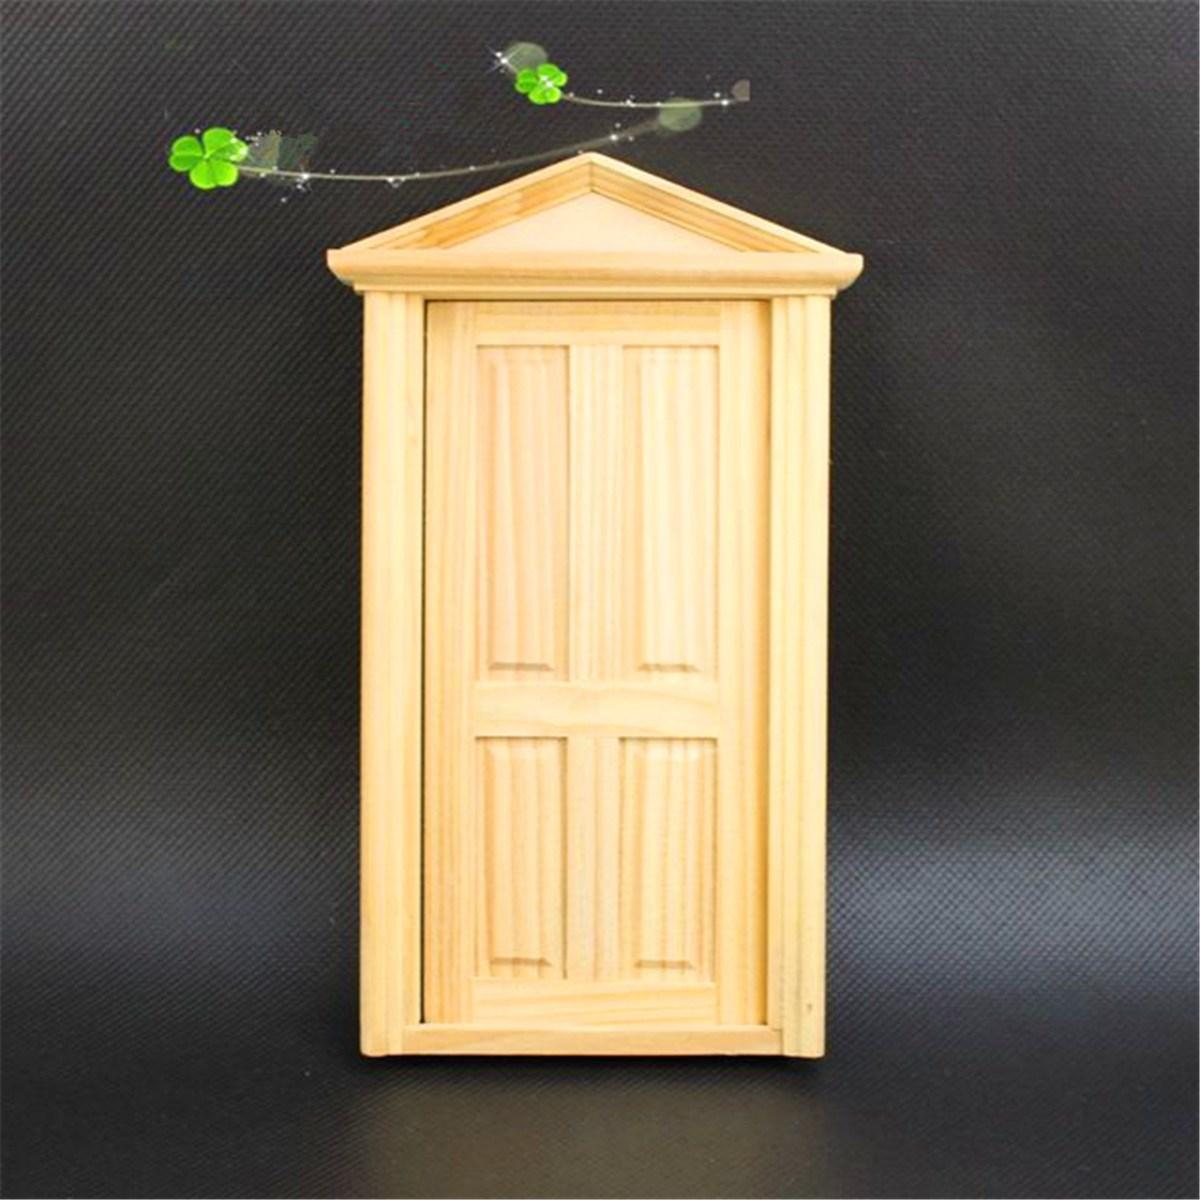 Diy Handmade Miniature 4 Panel Wooden Classical Exterior Door Frame